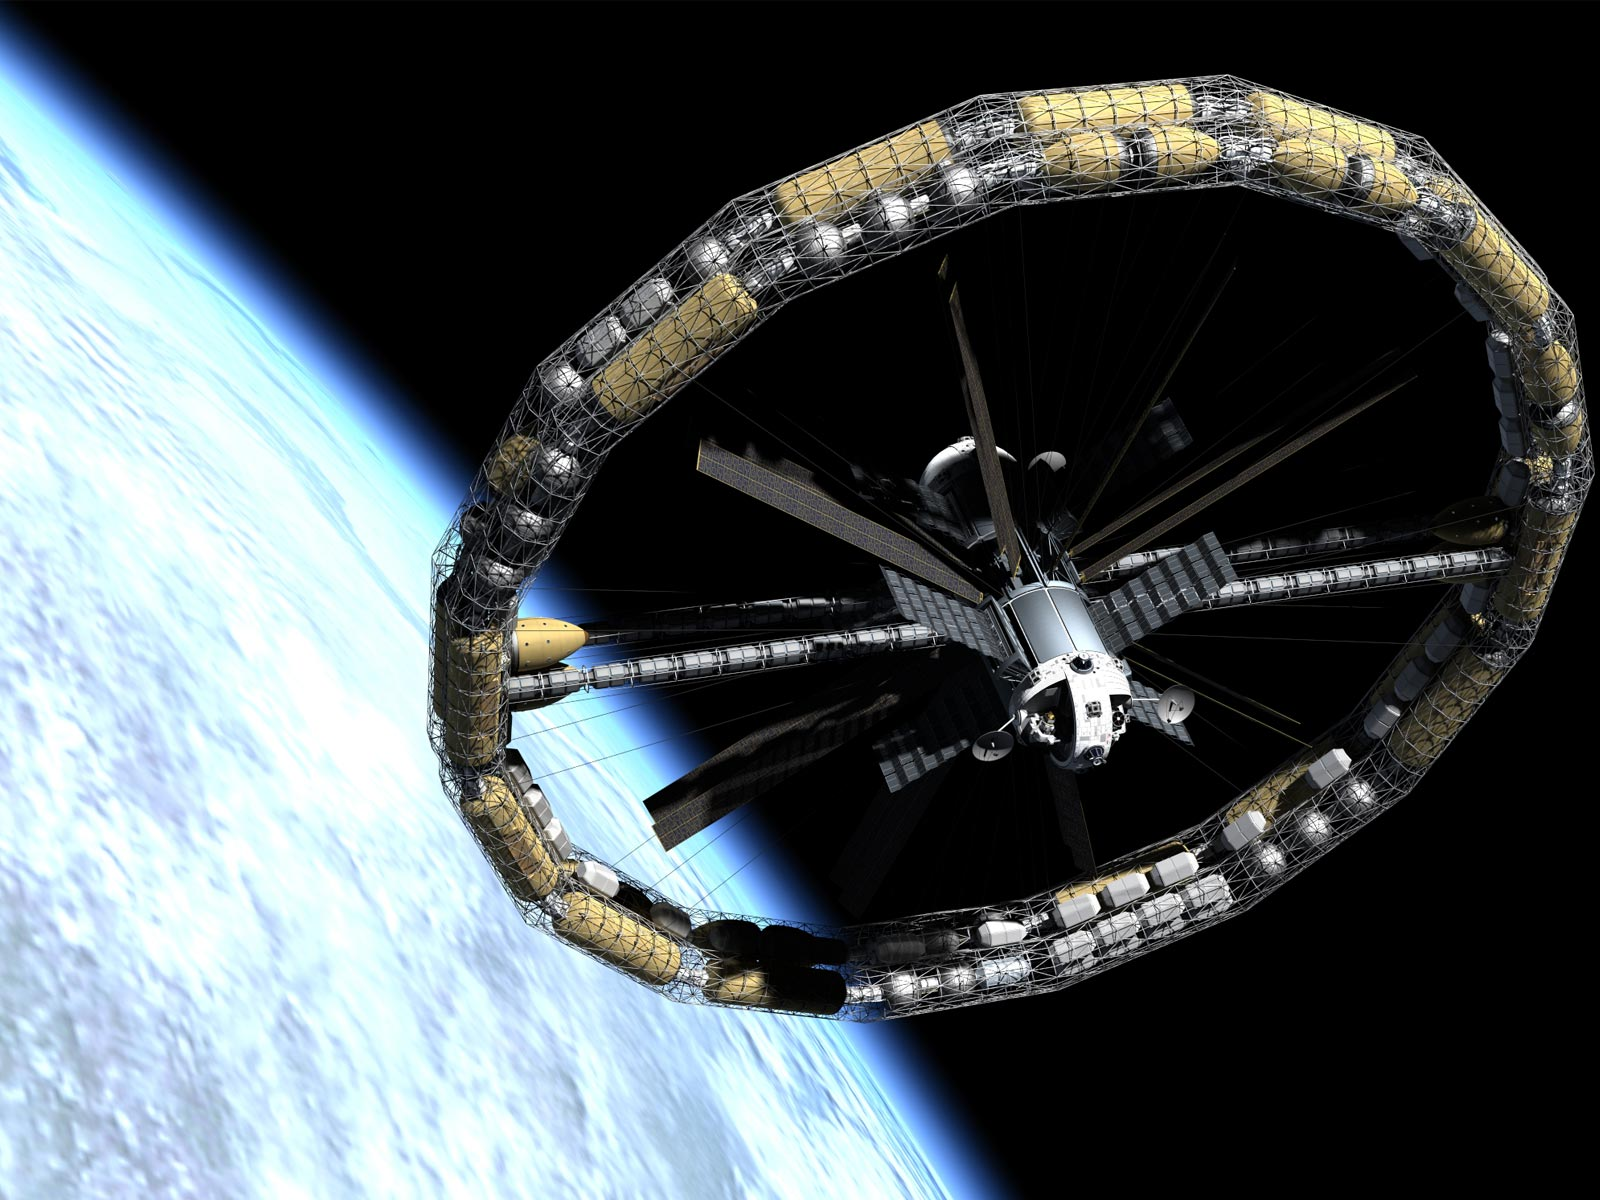 spacecraft in space - photo #26